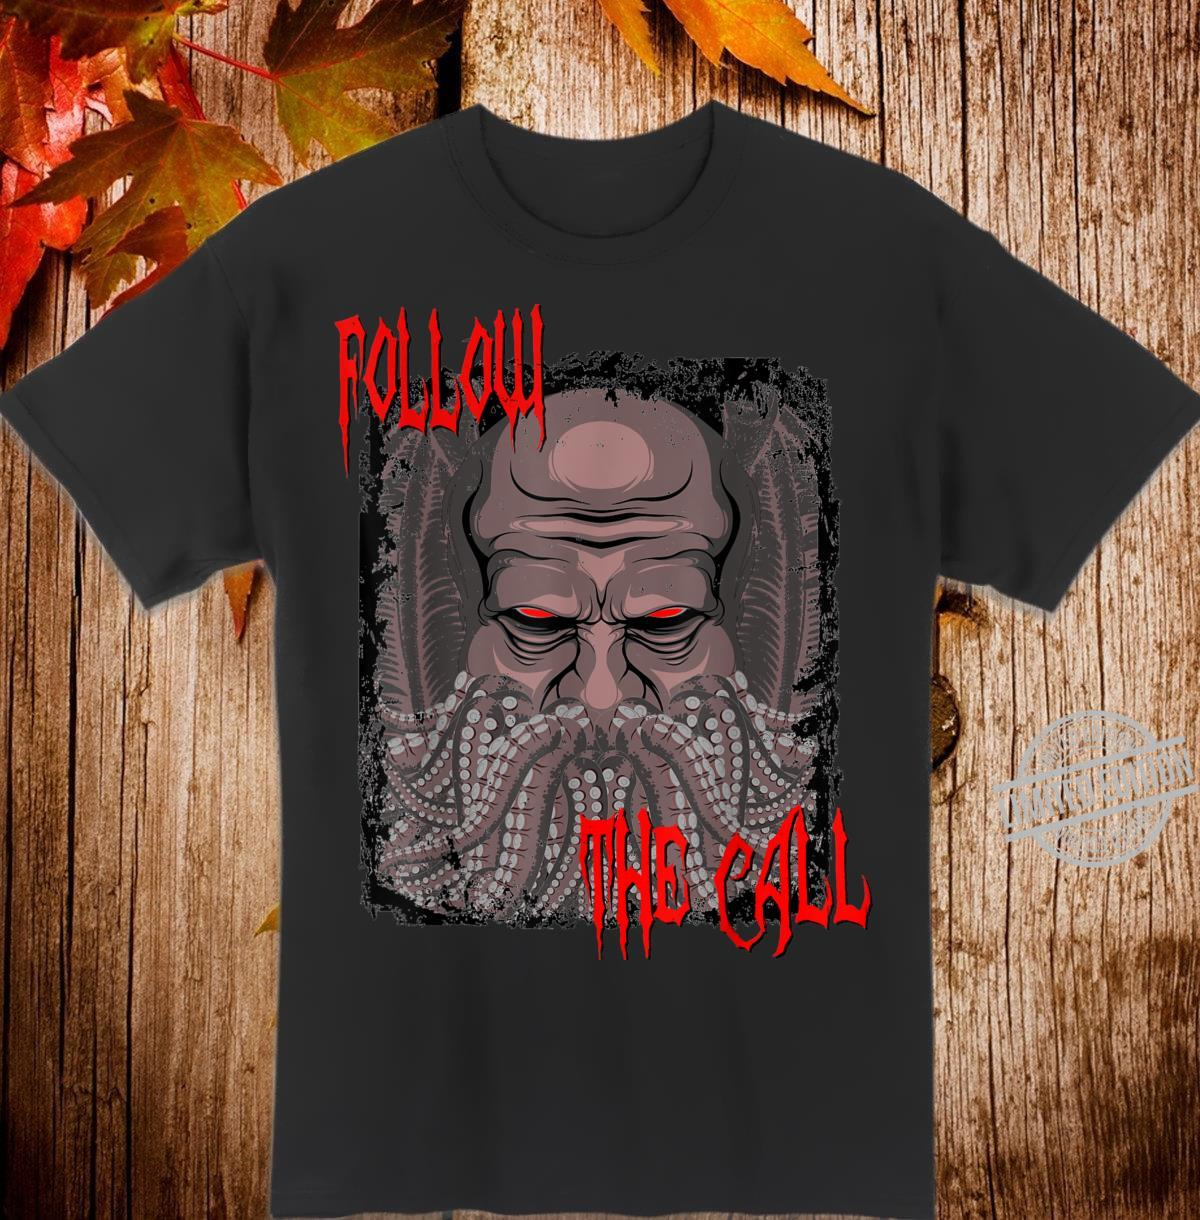 Old One Follow the Call Shirt